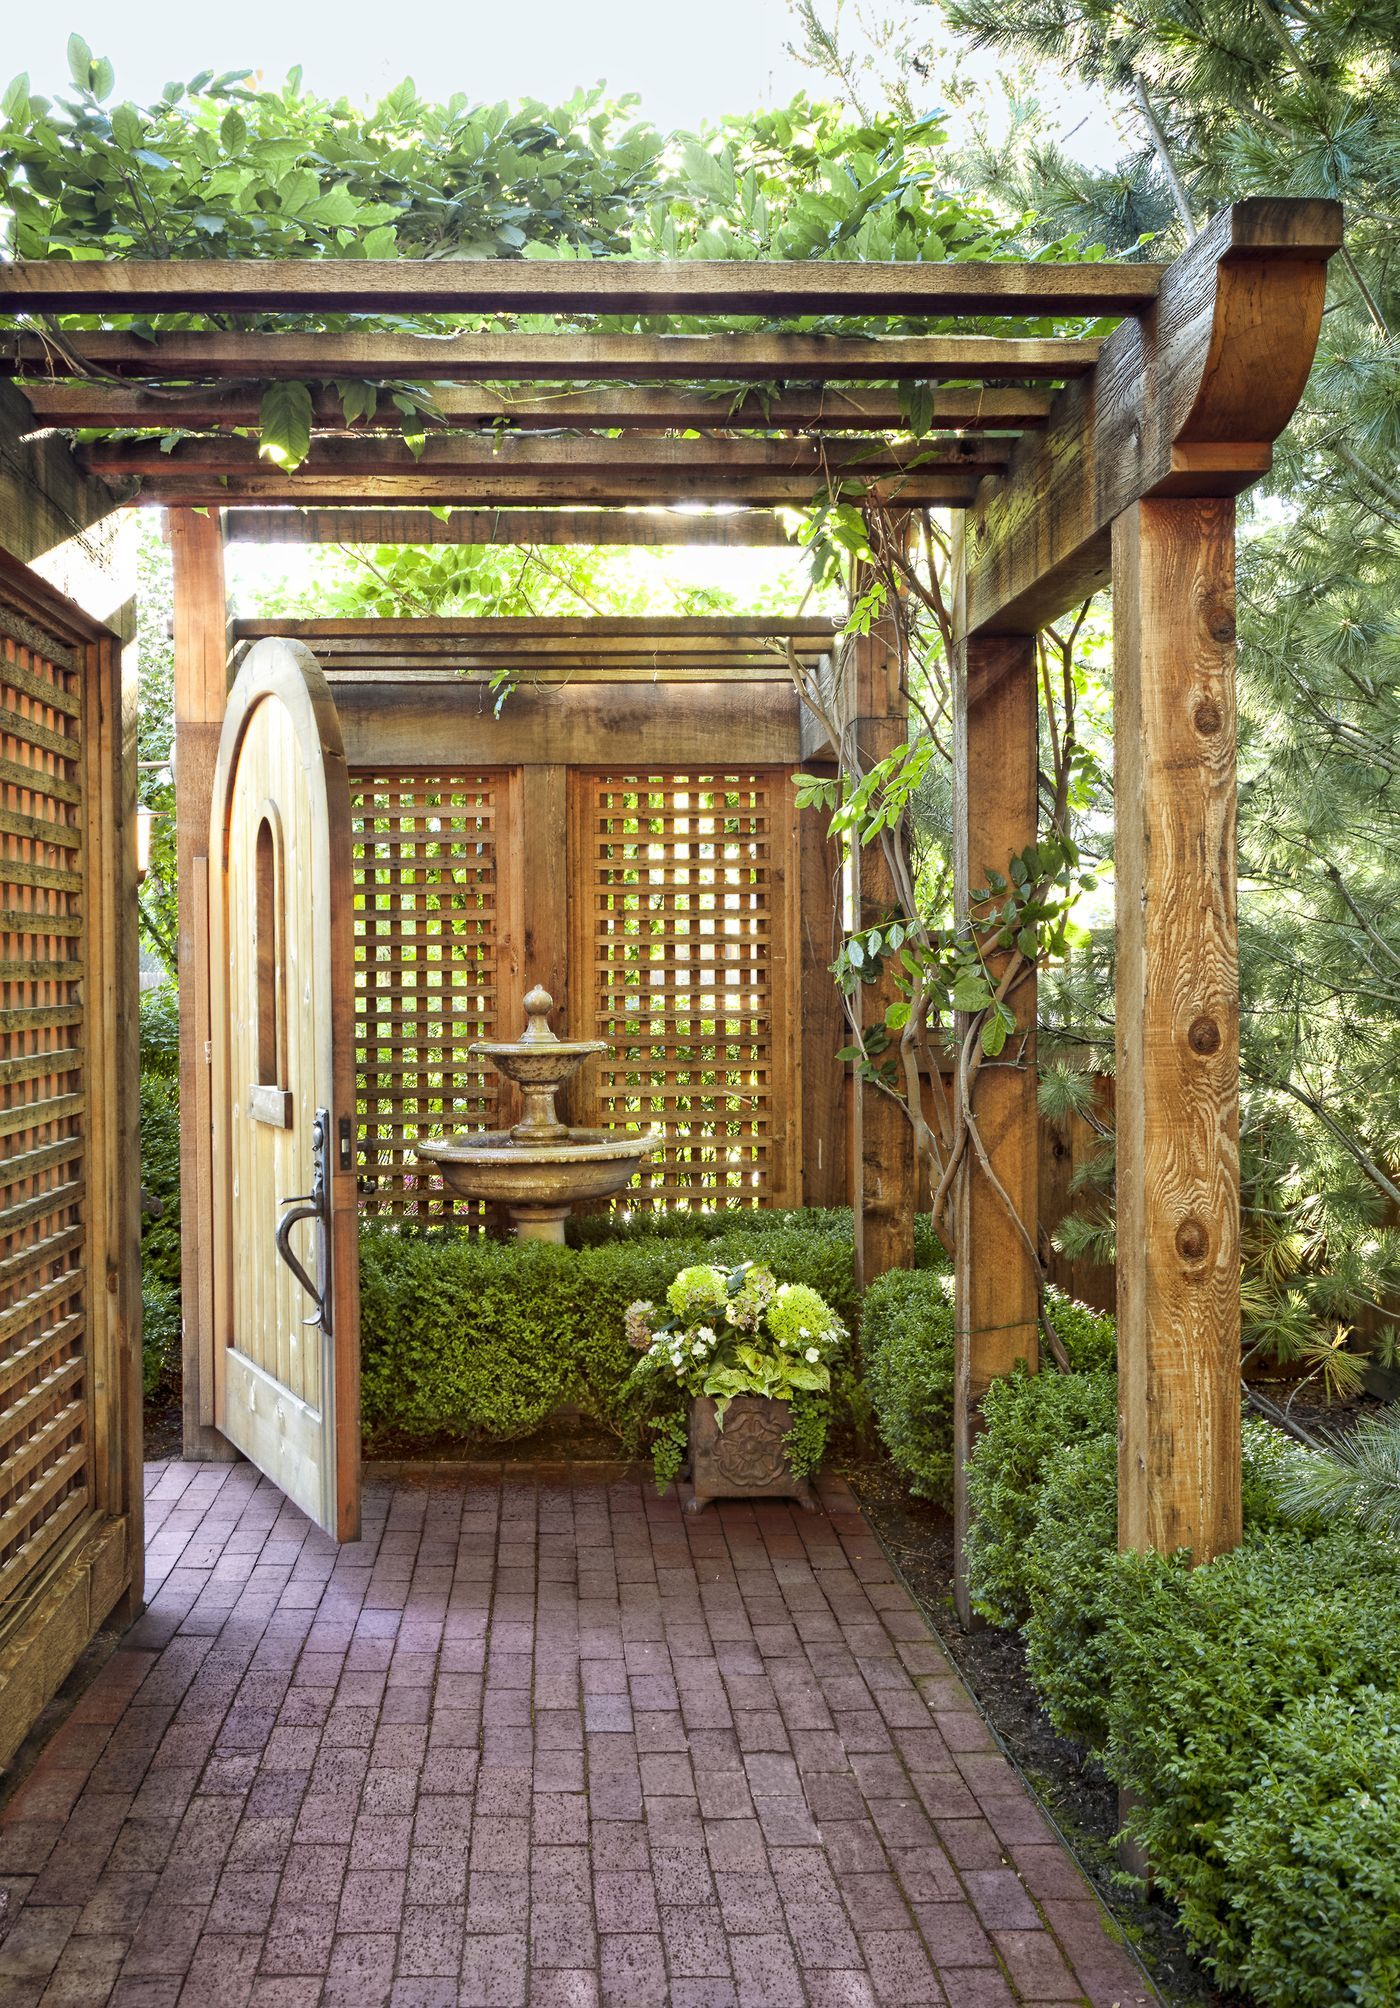 8 Lessons on Stretching a Small Yard is part of Large backyard landscaping, Garden design layout, Small backyard landscaping, Small backyard gardens, Backyard landscaping, Garden design - A landscape designer's strategies for maximizing the beauty and utility of a modestsize lot